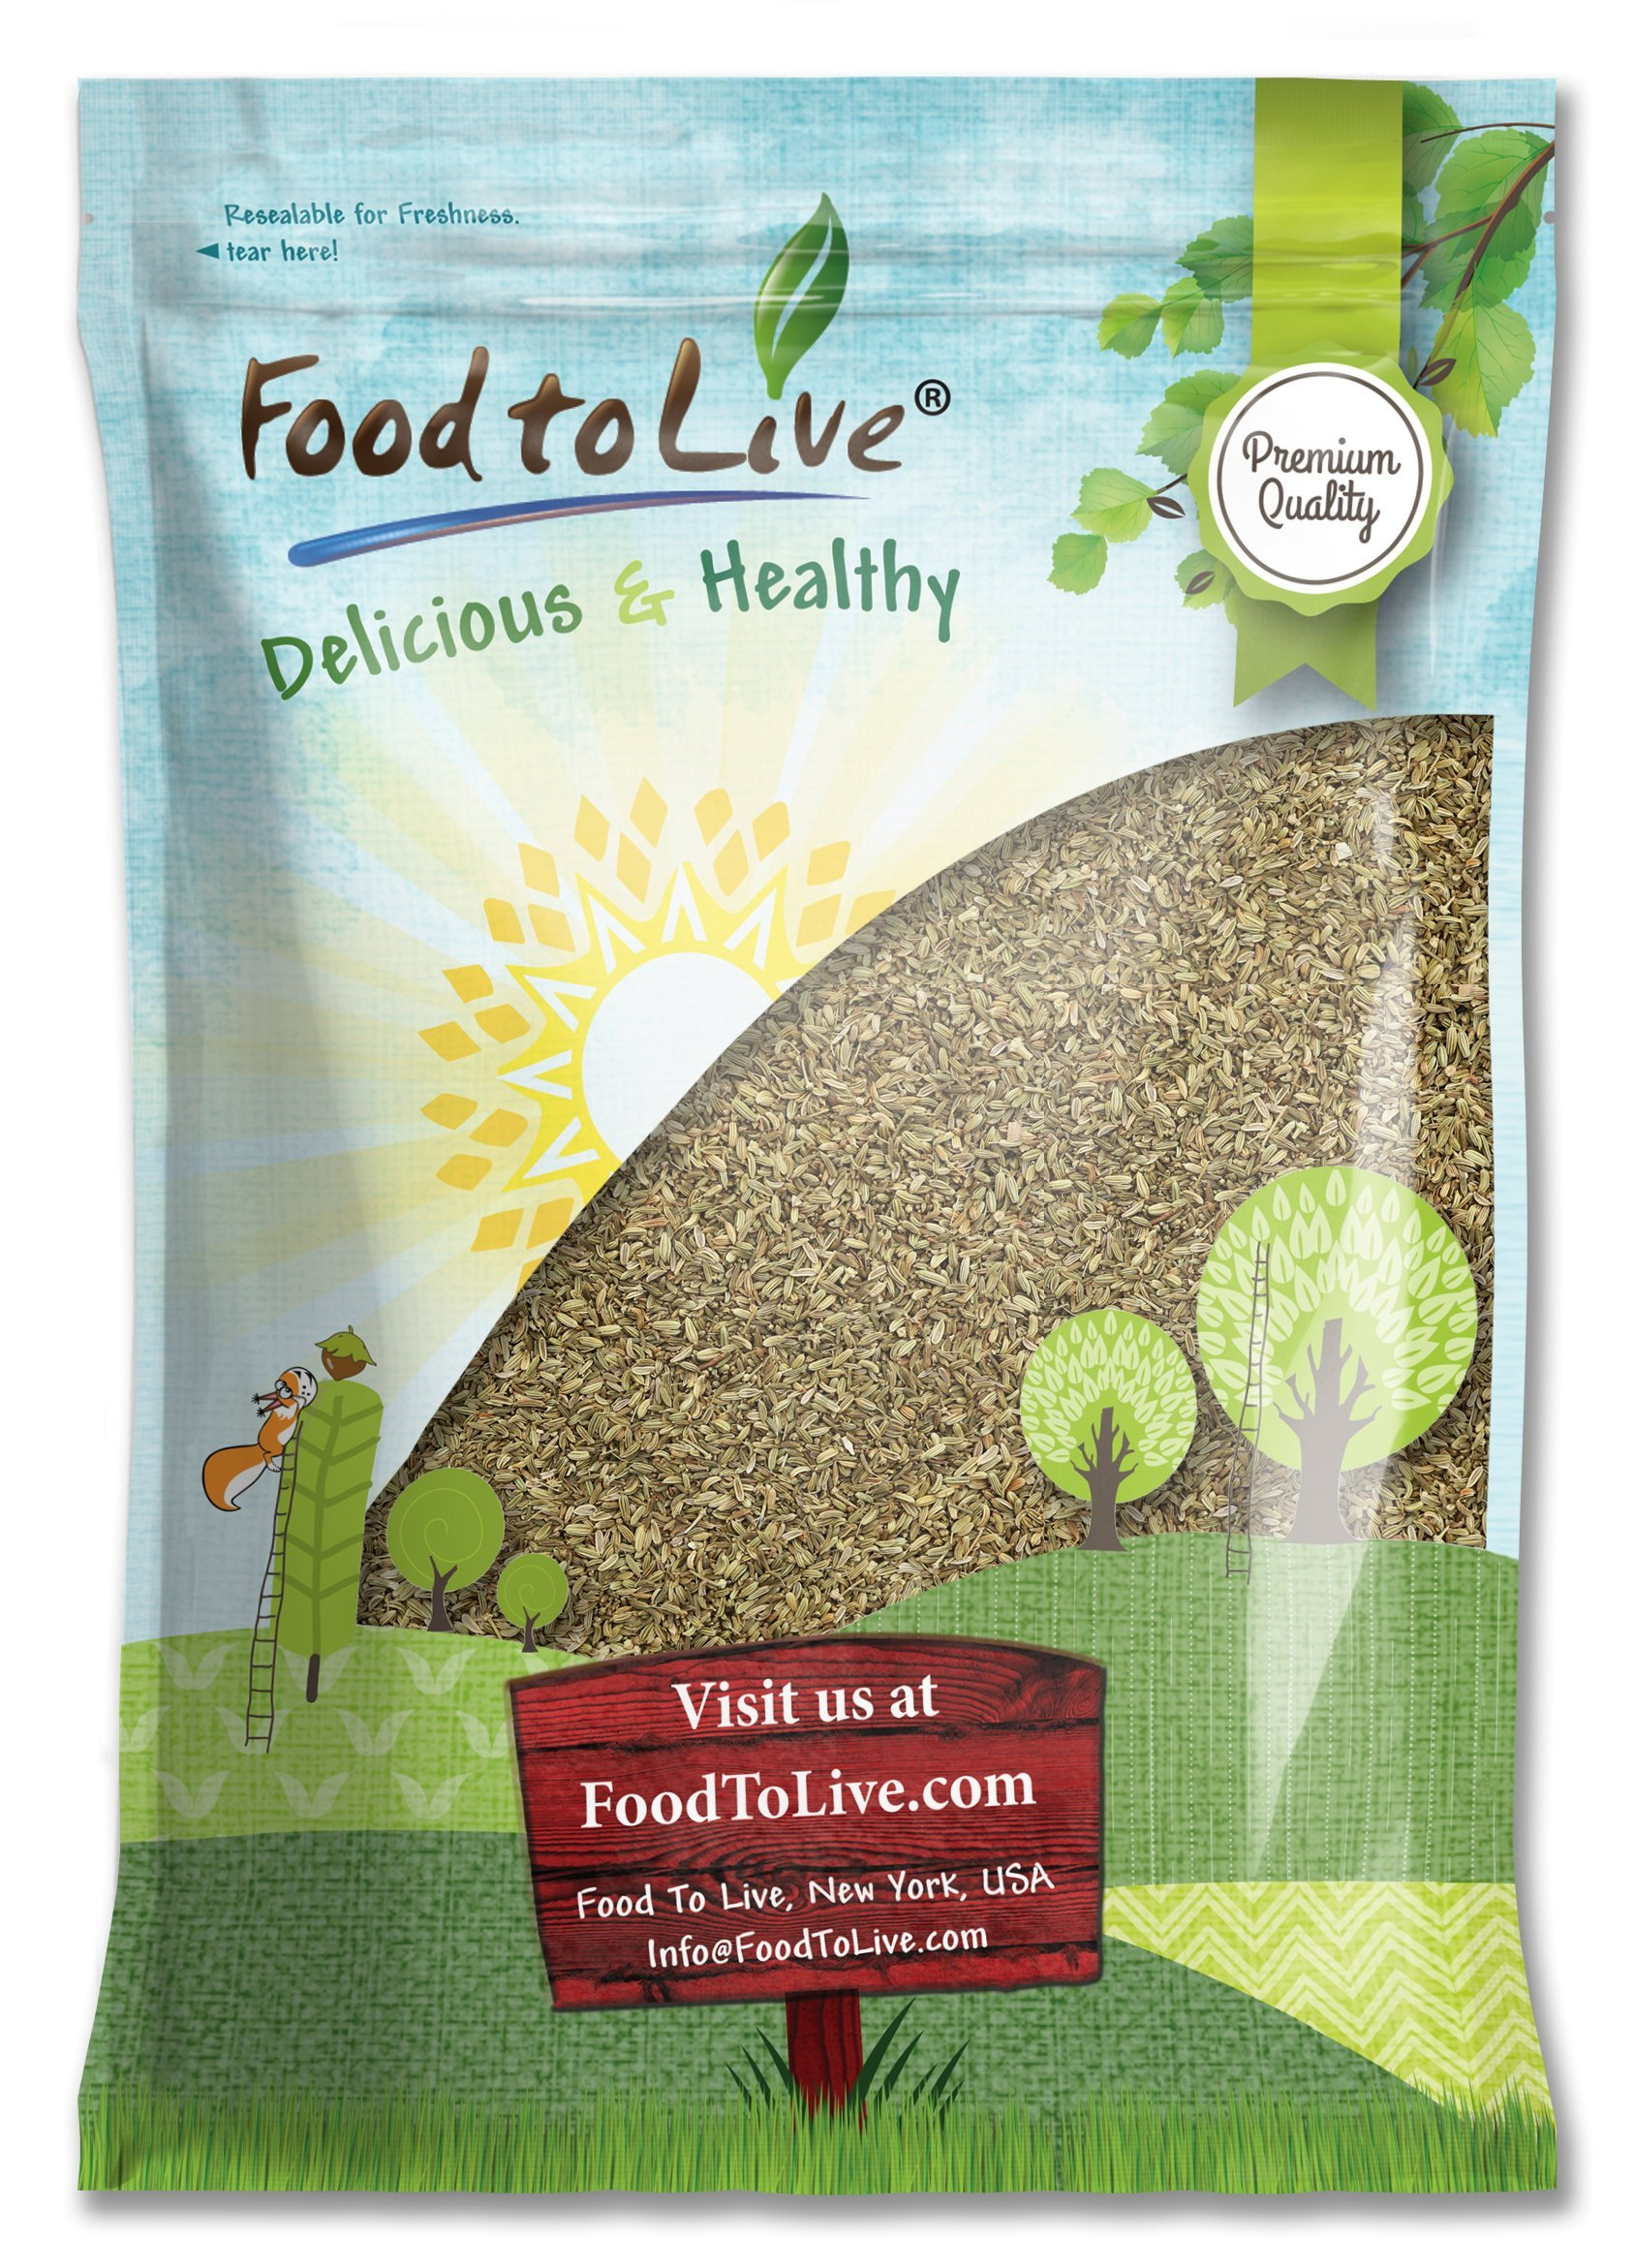 Fennel Seed Whole by Food to Live (Kosher, Bulk) — 5 Pounds by Food to Live (Image #1)